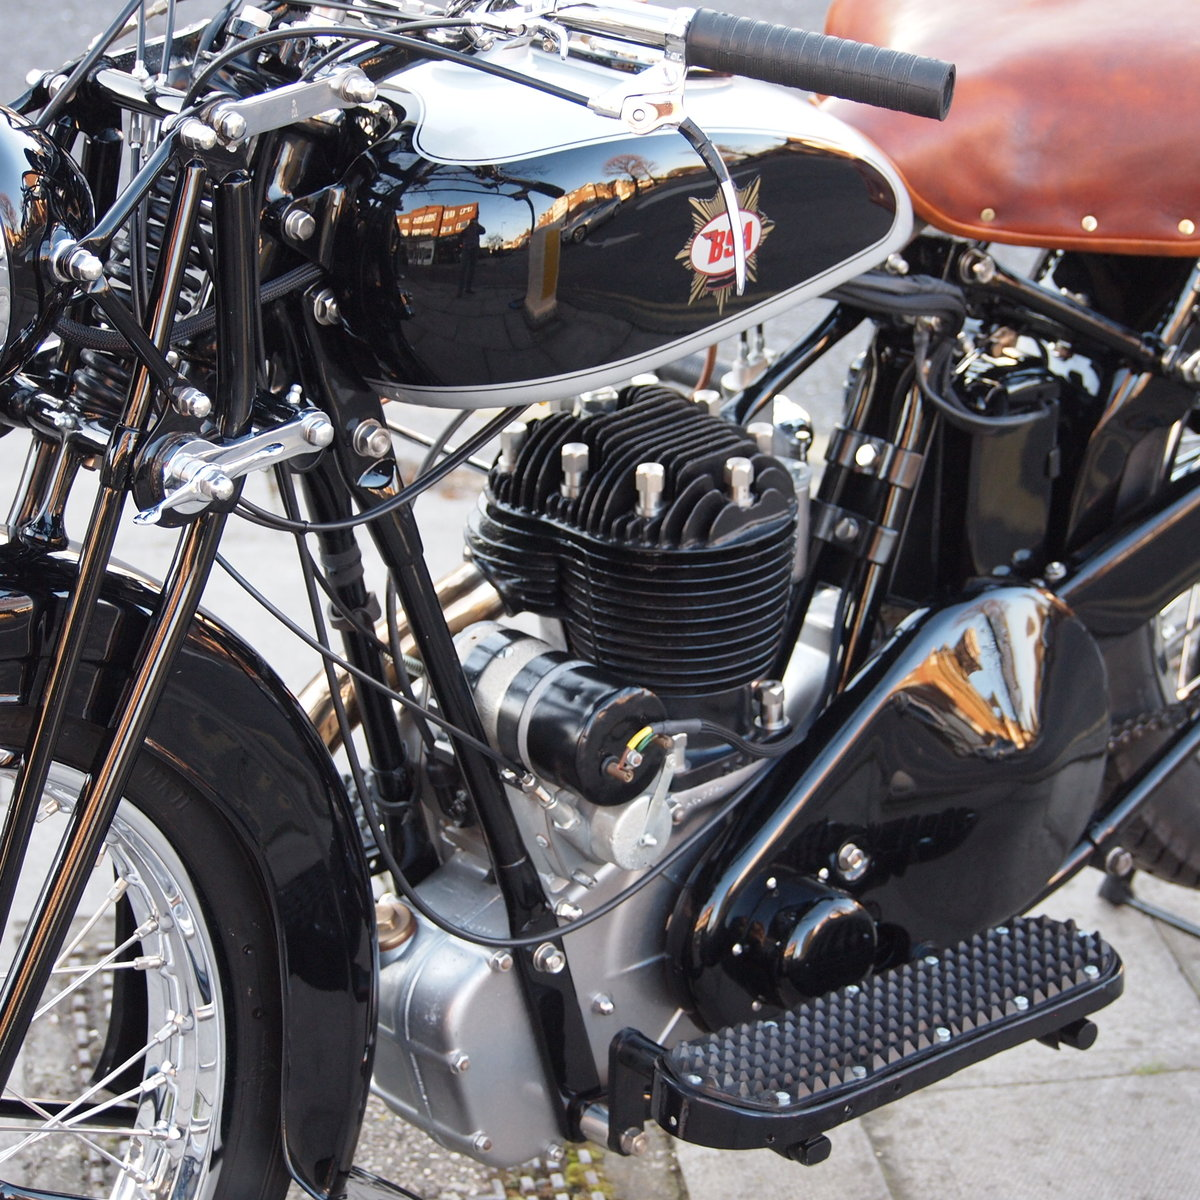 1933 BSA W33/6 499cc 3 Speed Hand Gears, Pure Art. For Sale (picture 6 of 6)